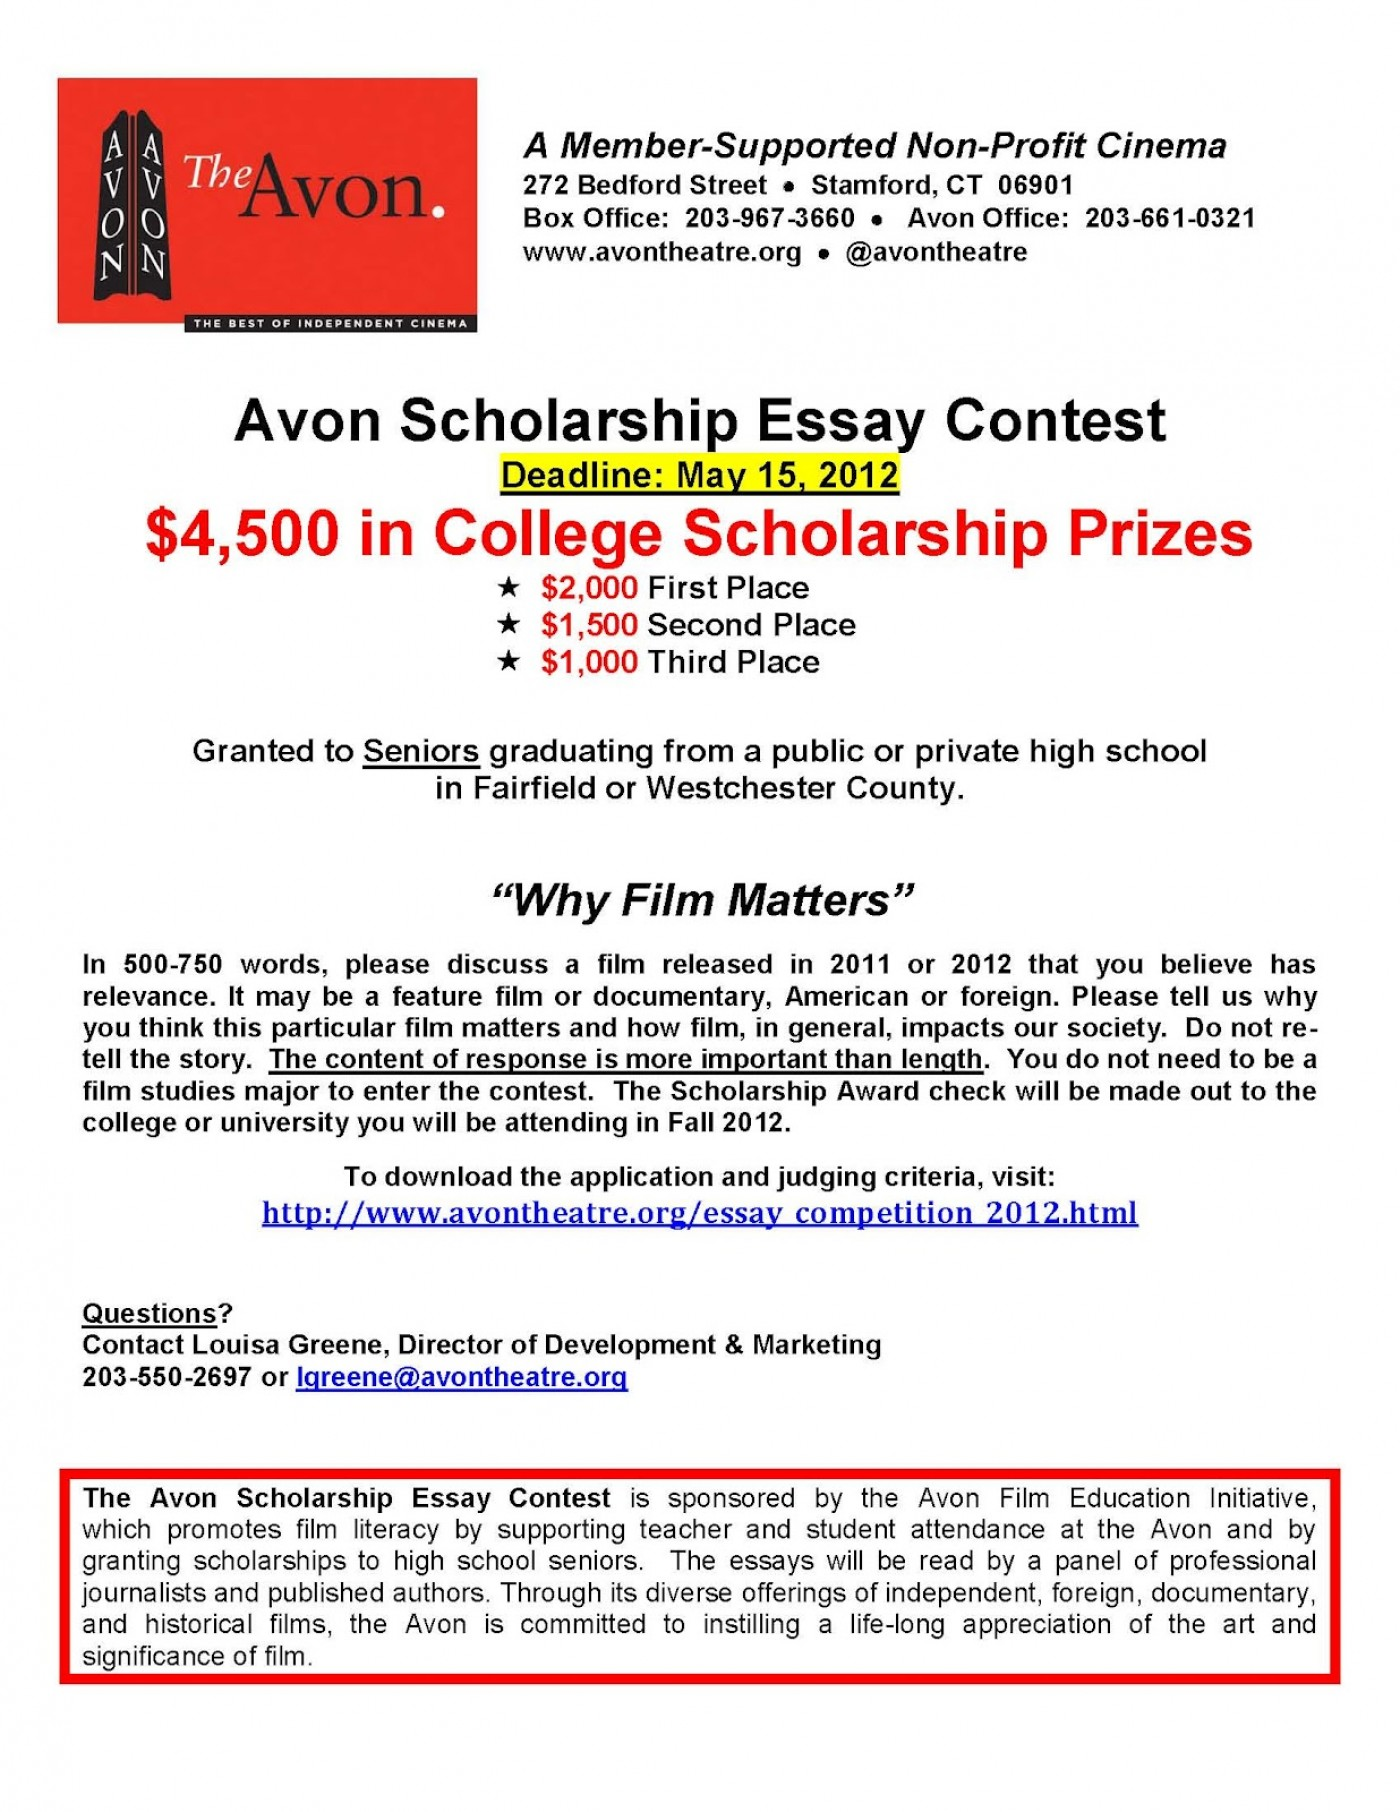 002 No Essay Collegeip Prowler Freeips For High School Seniors Avonscholarshipessaycontest2012 In Texas California Class Of Short Example Wondrous Scholarship College Scholarships 2018 2019 Free 1400